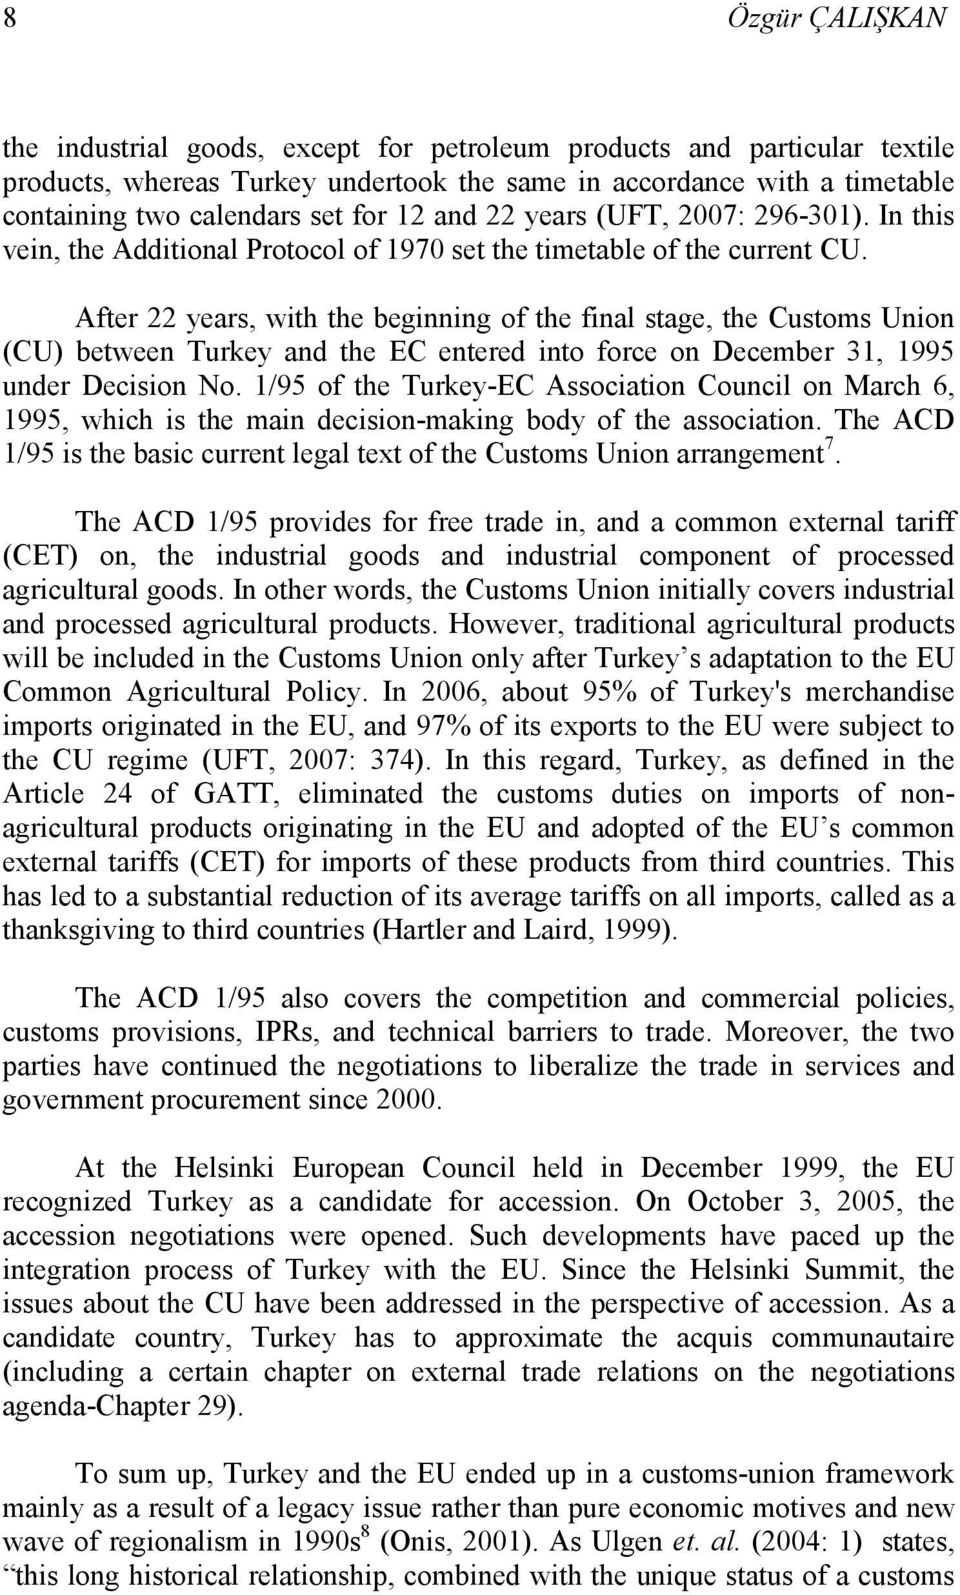 After 22 years, with the beginning of the final stage, the Customs Union (CU) between Turkey and the EC entered into force on December 31, 1995 under Decision No.